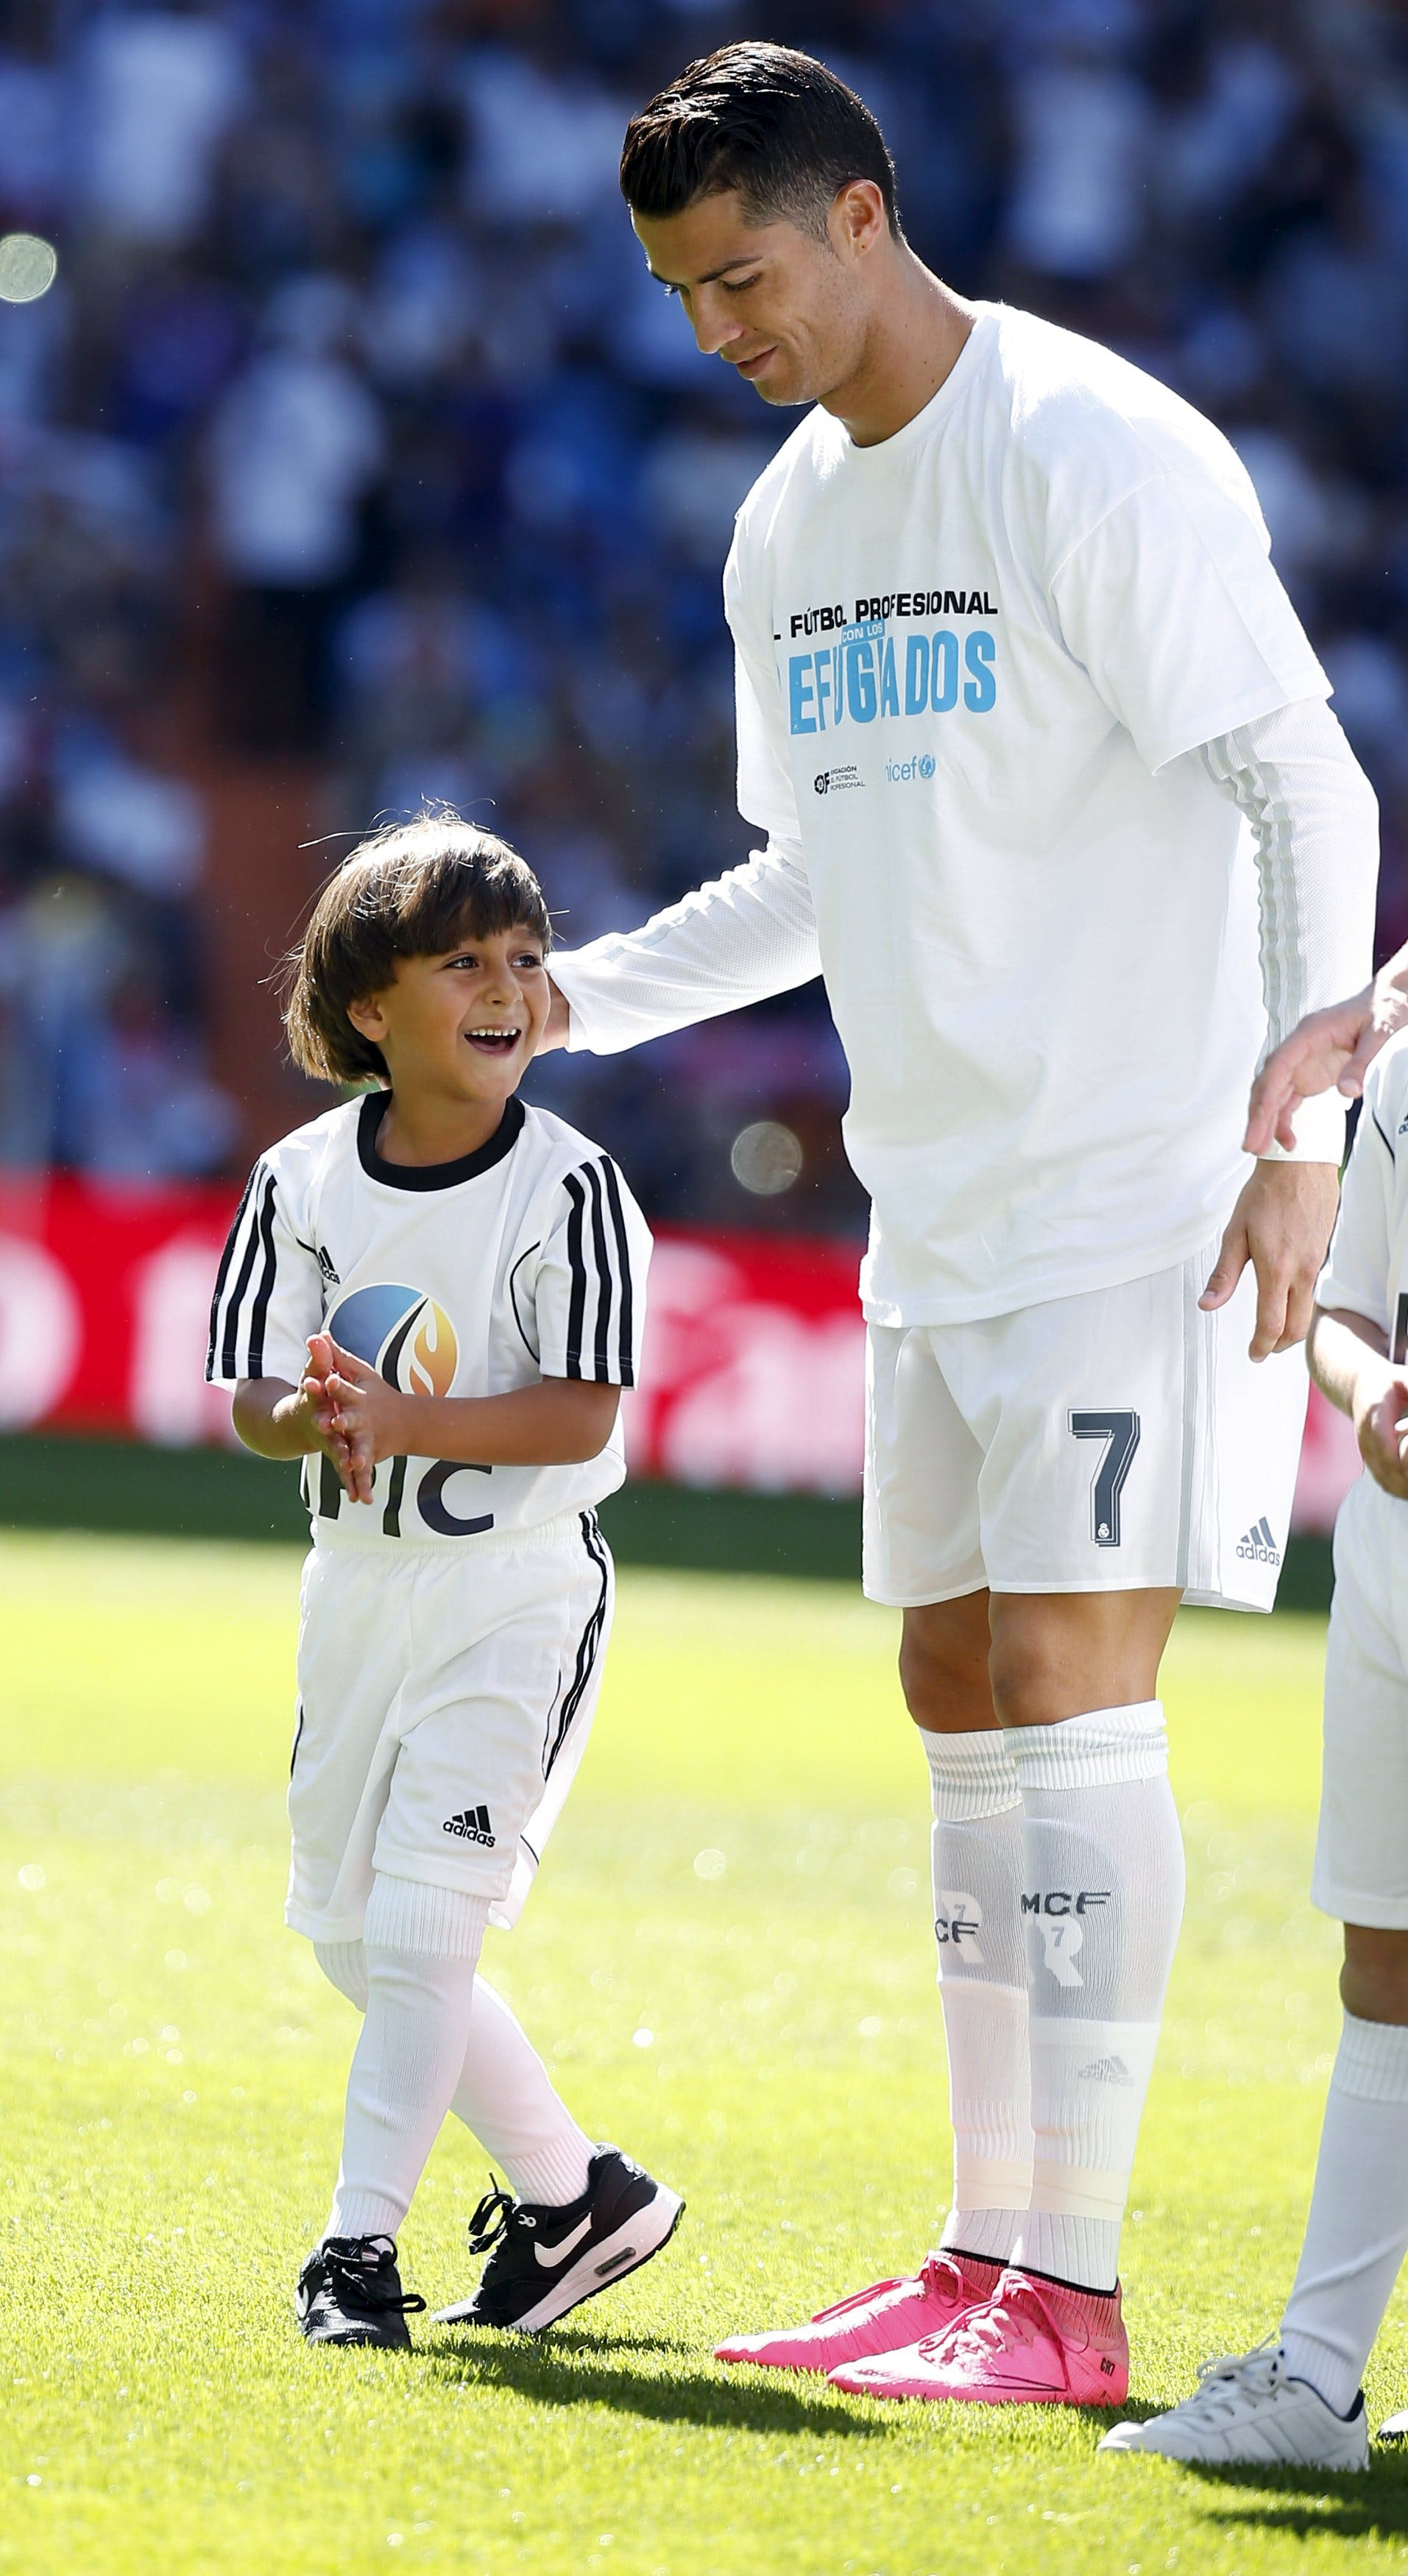 Zaid, 7, son of Osama Abdul Mohsen, a Syrian refugee who was filmed being tripped by a camerawoman as he fled police in Hungary with him, smiles as he stands next to Real Madrid's Cristiano Ronaldo before the Spanish first division soccer match against Granada at Santiago Bernabeu stadium in Madrid, Spain, September 19, 2015. REUTERS/Sergio Perez